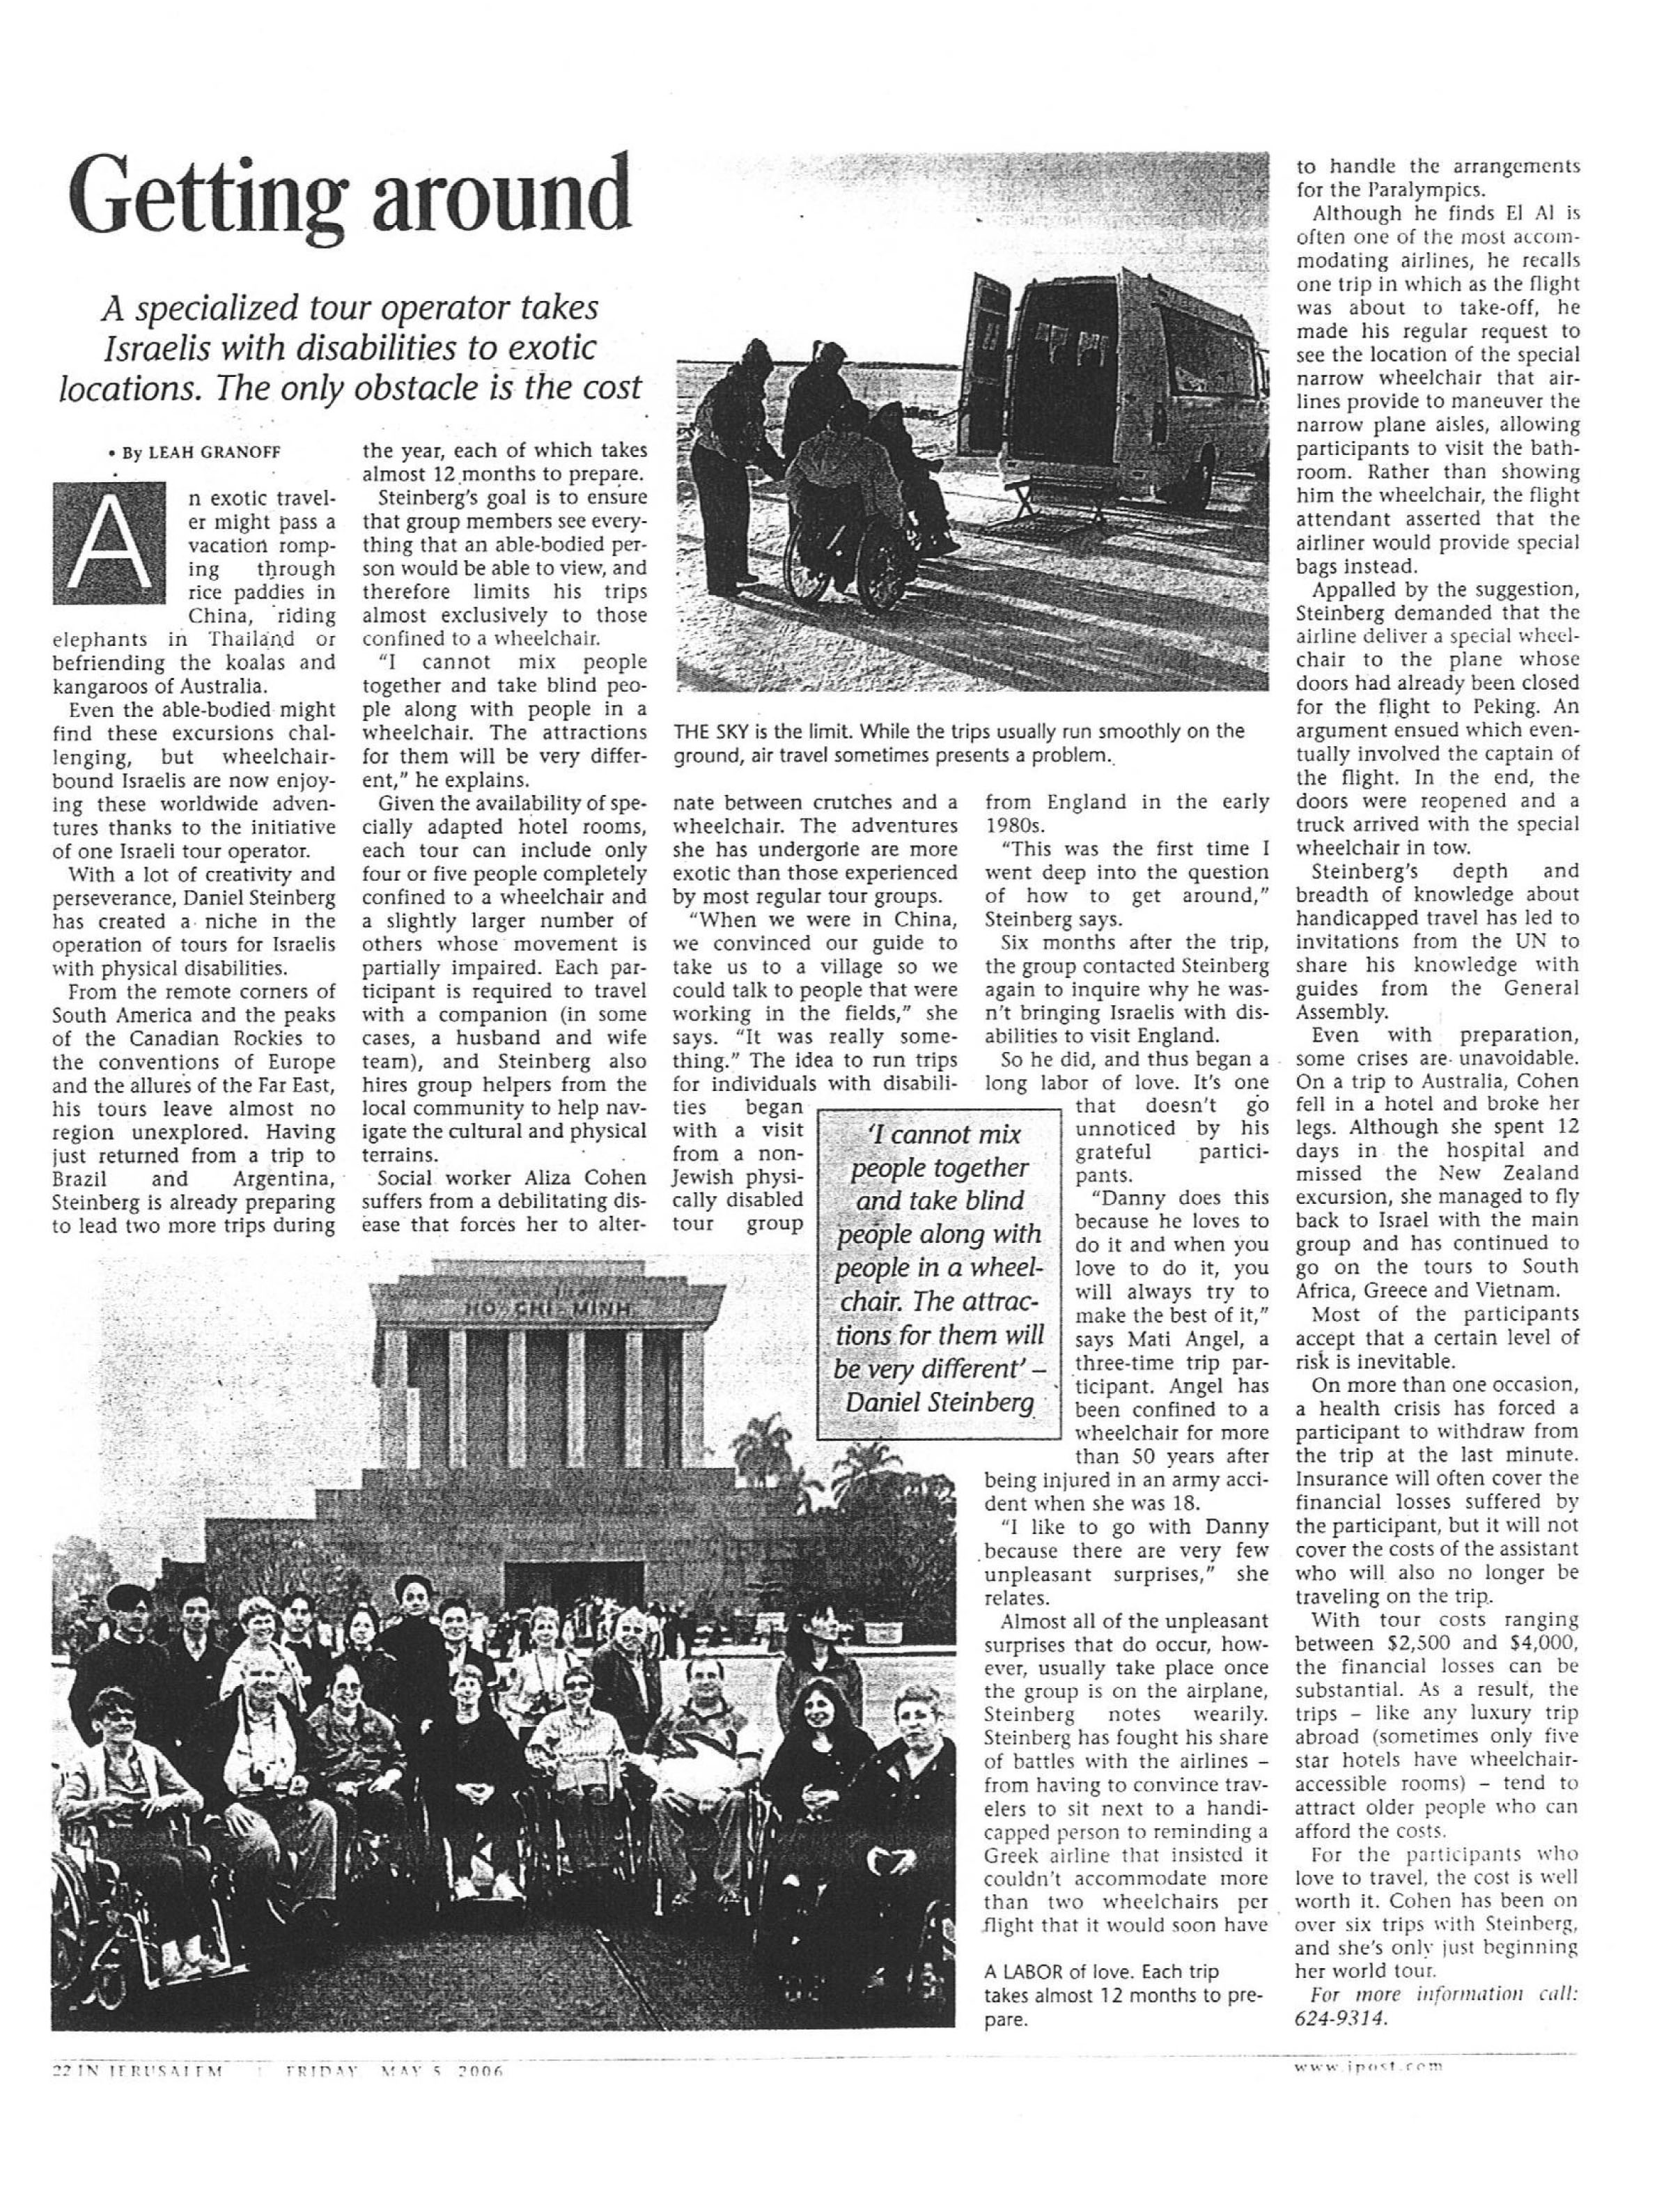 a picture of the article